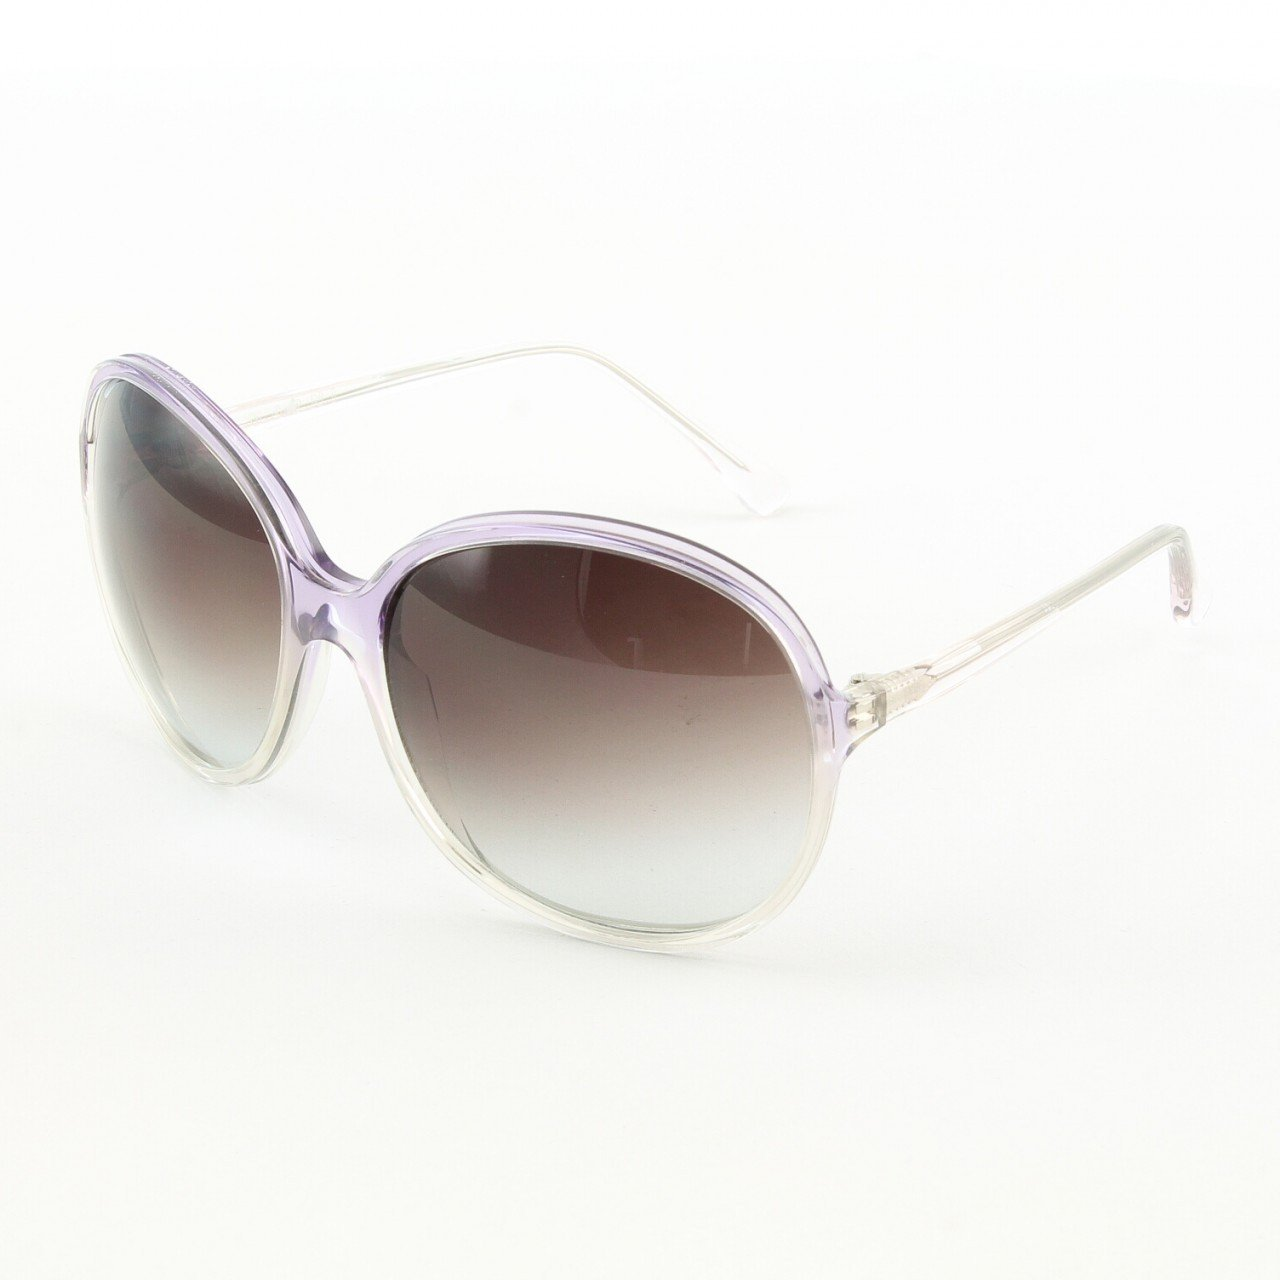 Marni MA165S Sunglasses Col. 09 Oversized Lavender Frame with Gray Gradient Lenses